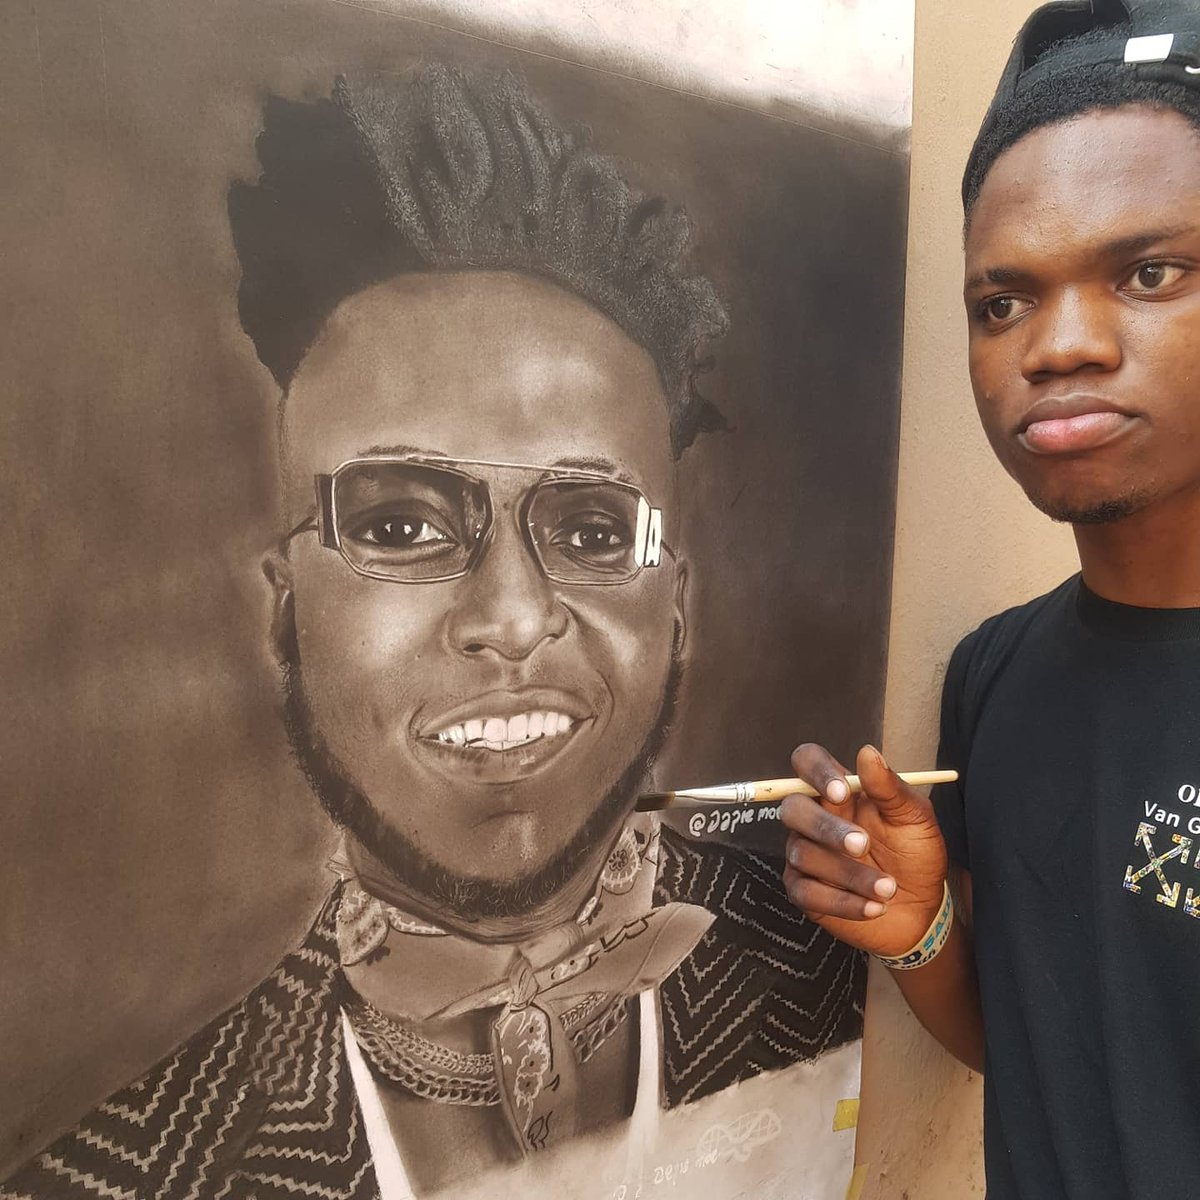 The charcoal portrait of @djkaywise done by me 😜 Size:24 by 24 inches.. Please help me to retweet and tag him till he sees it 🙏🙏🙏  @djkaywise   #artshare #DrunkardDonkeyAJITH #bodypositivity #Cuppy #EricaNaYourMama #awesamtwtselfieday #AbujaTwitterCommunity #EqualityManVIJAY